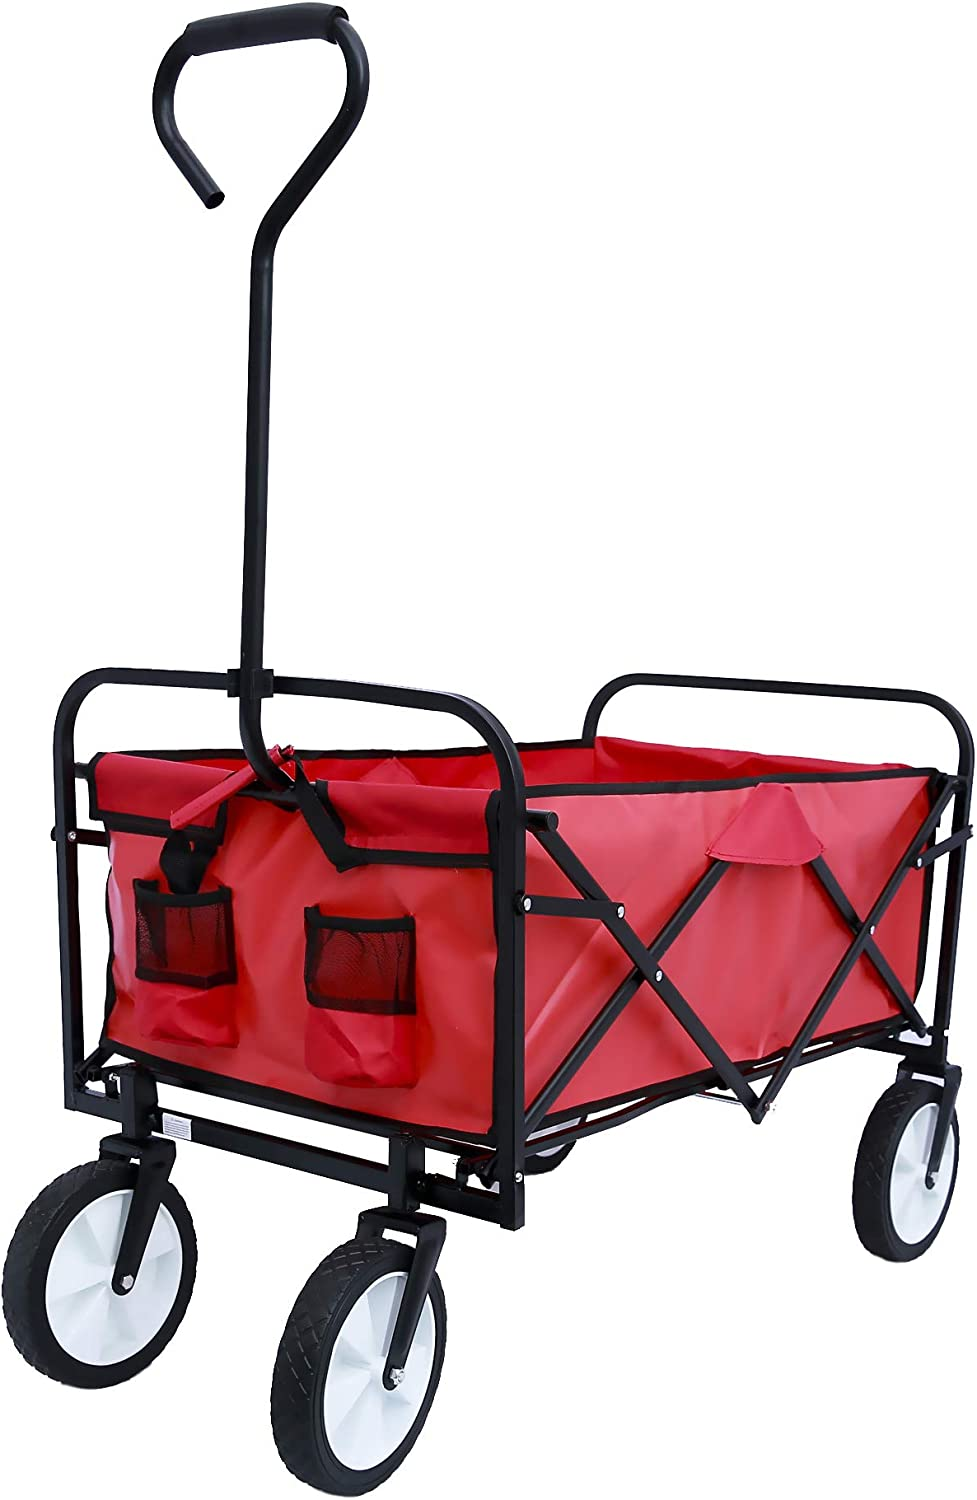 Awlstar Max 64% OFF Collapsible Folding 70% OFF Outlet Wagon S Outdoor Utility Garden